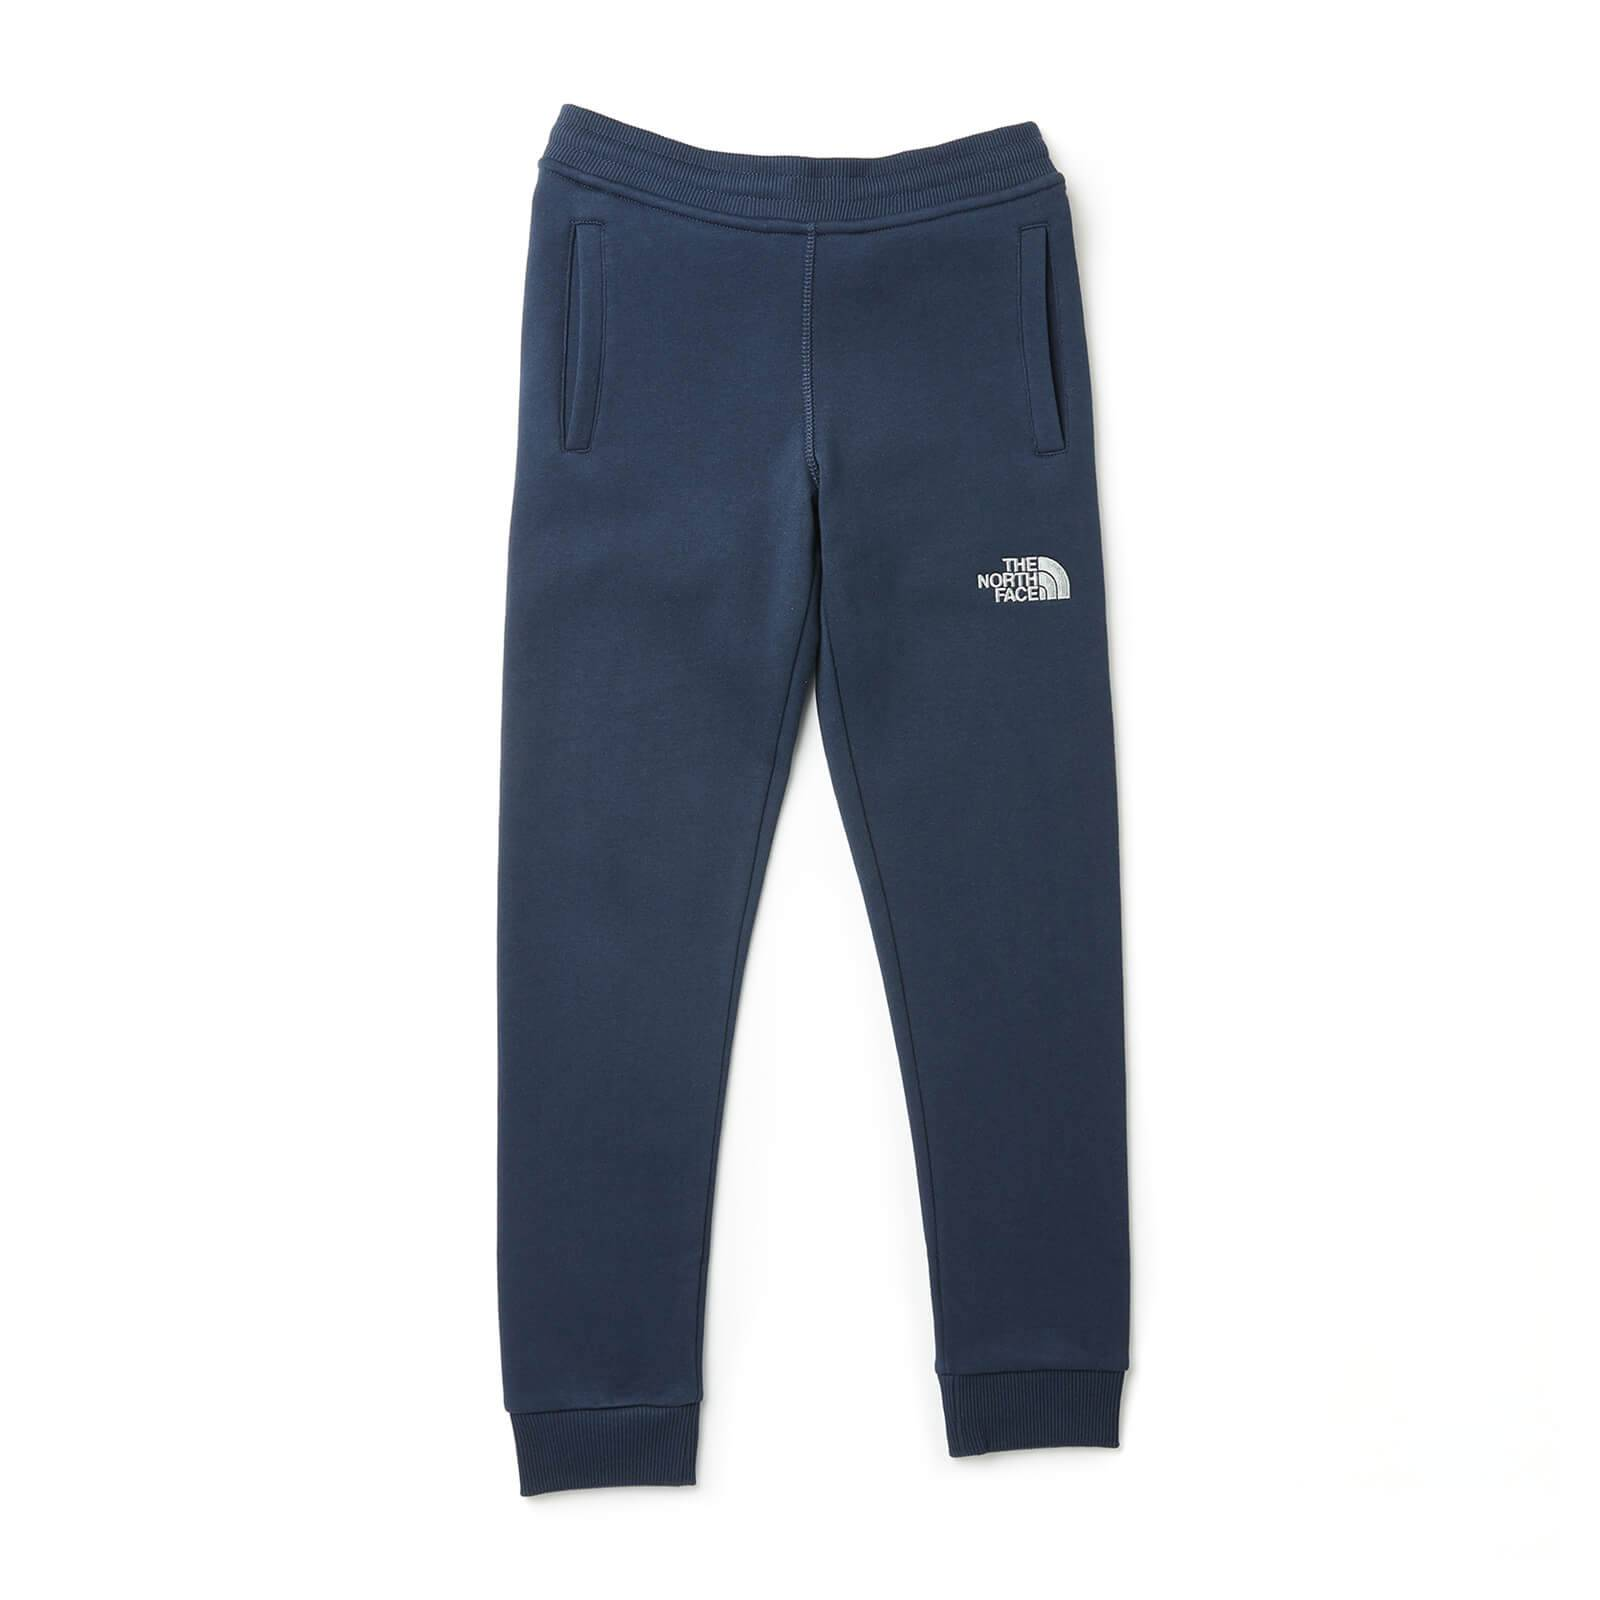 The North Face Boys' Youth Fleece Pants - Cosmic Blue - 6 years/XS - Blue